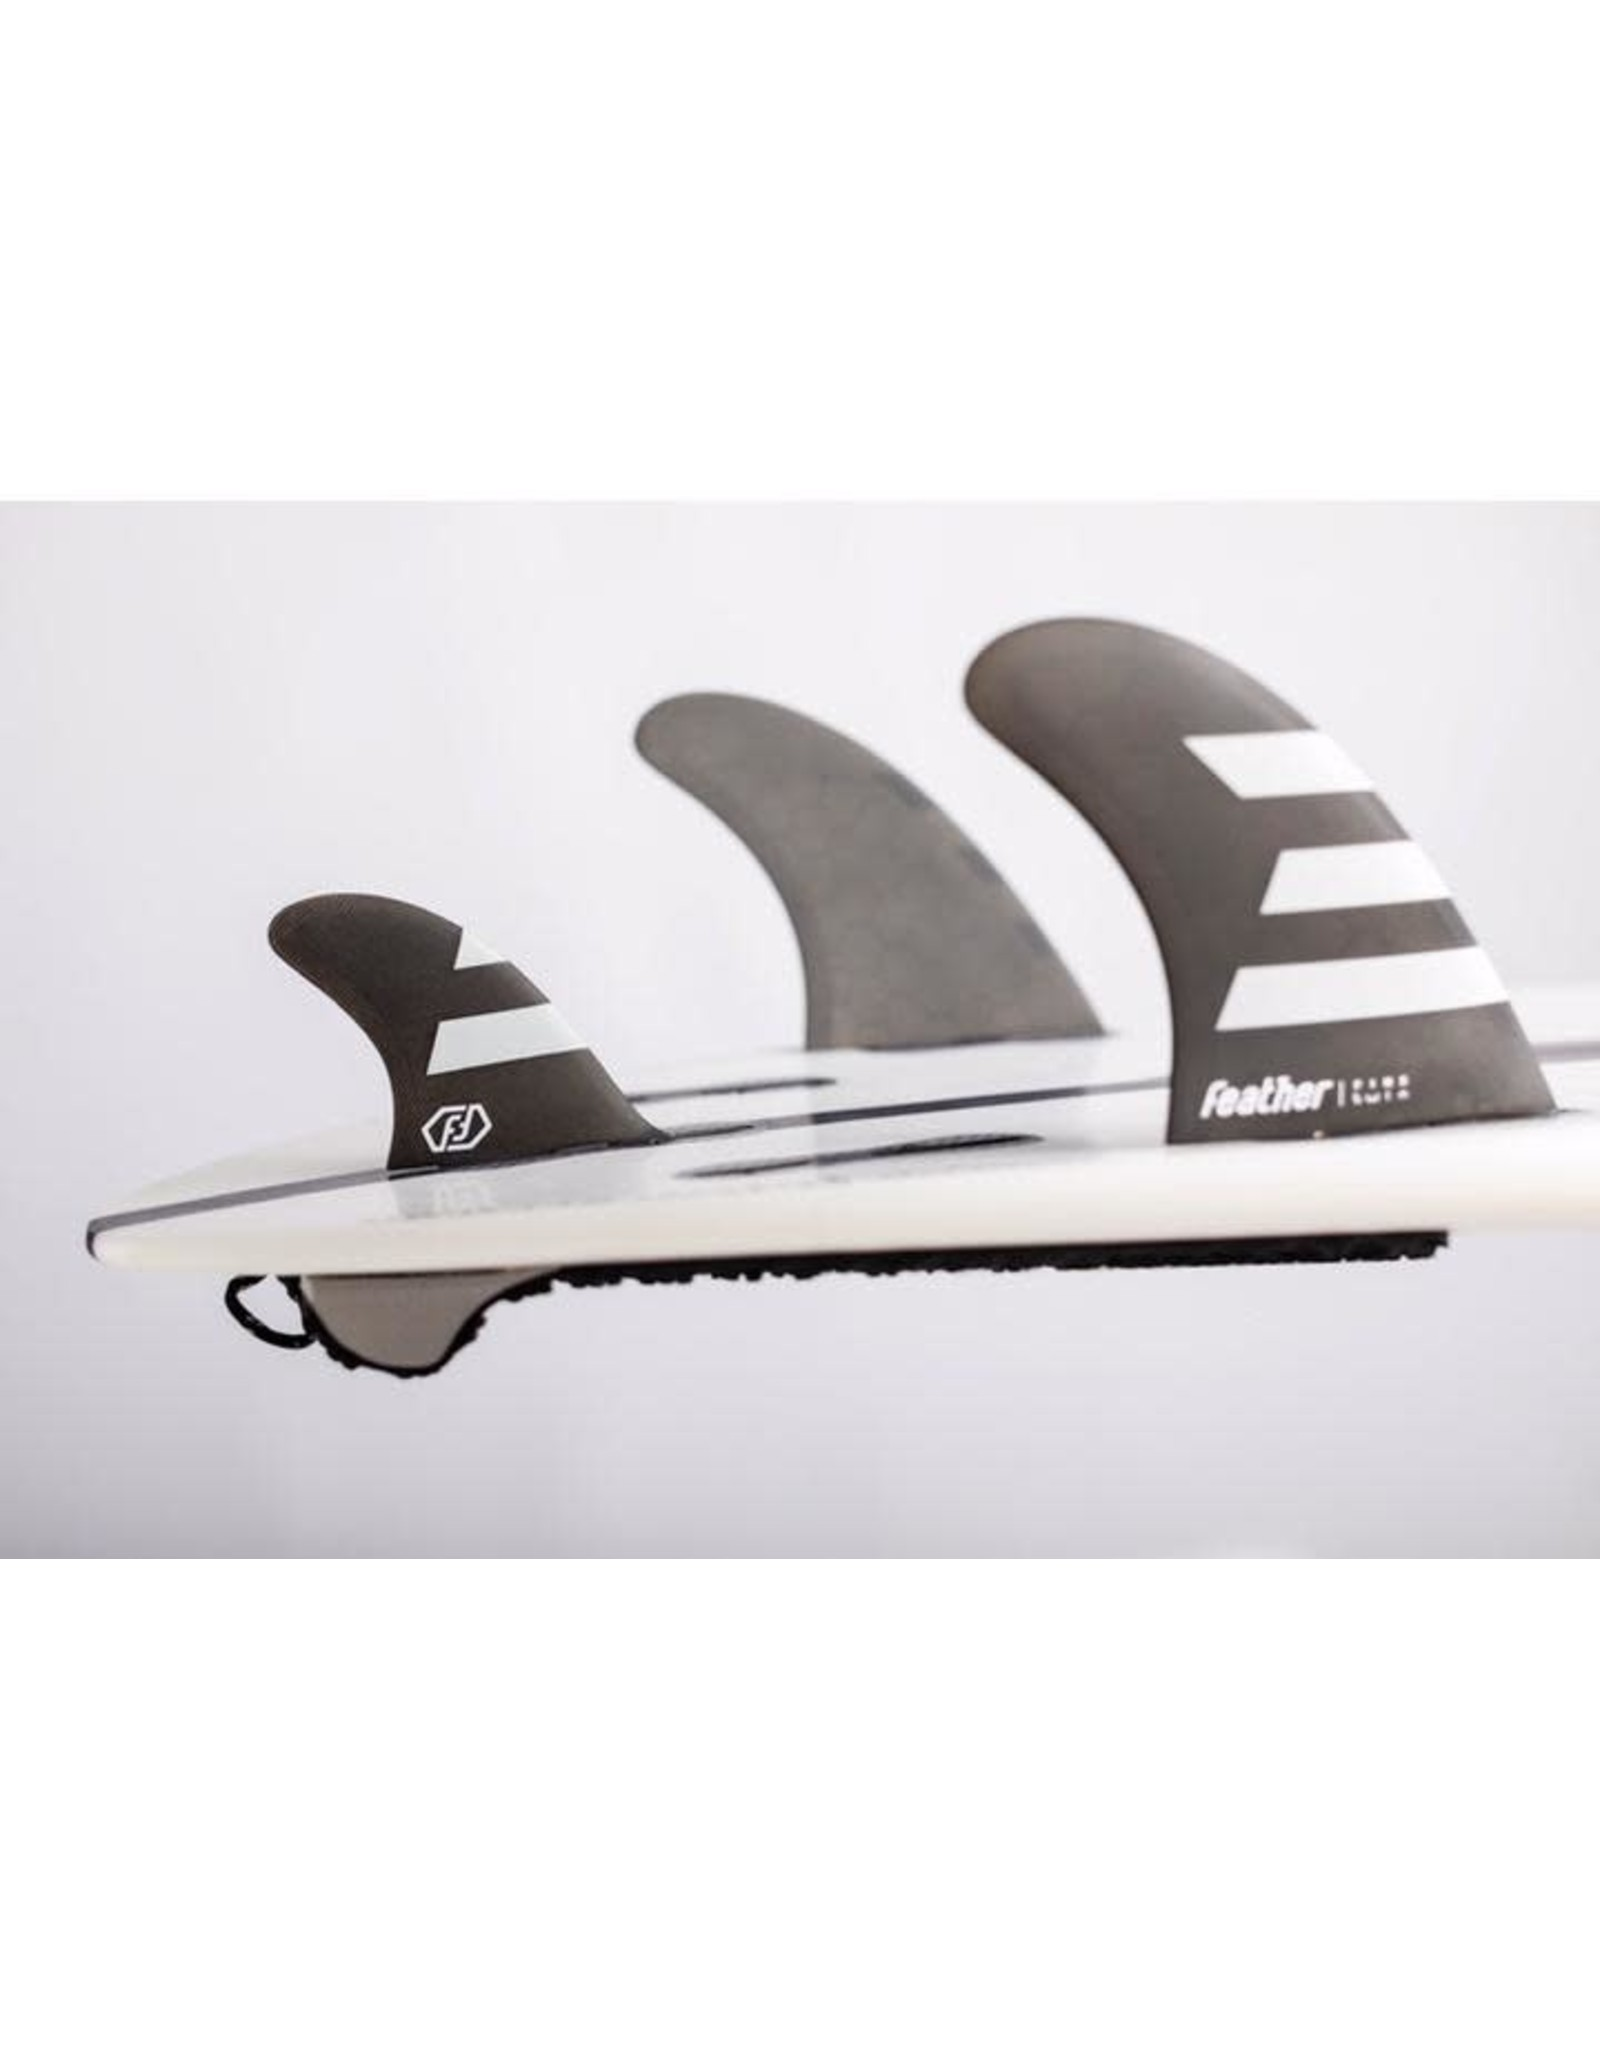 Feather Fins Feather Fins Twin 2 + 1 FCS II Click Tab